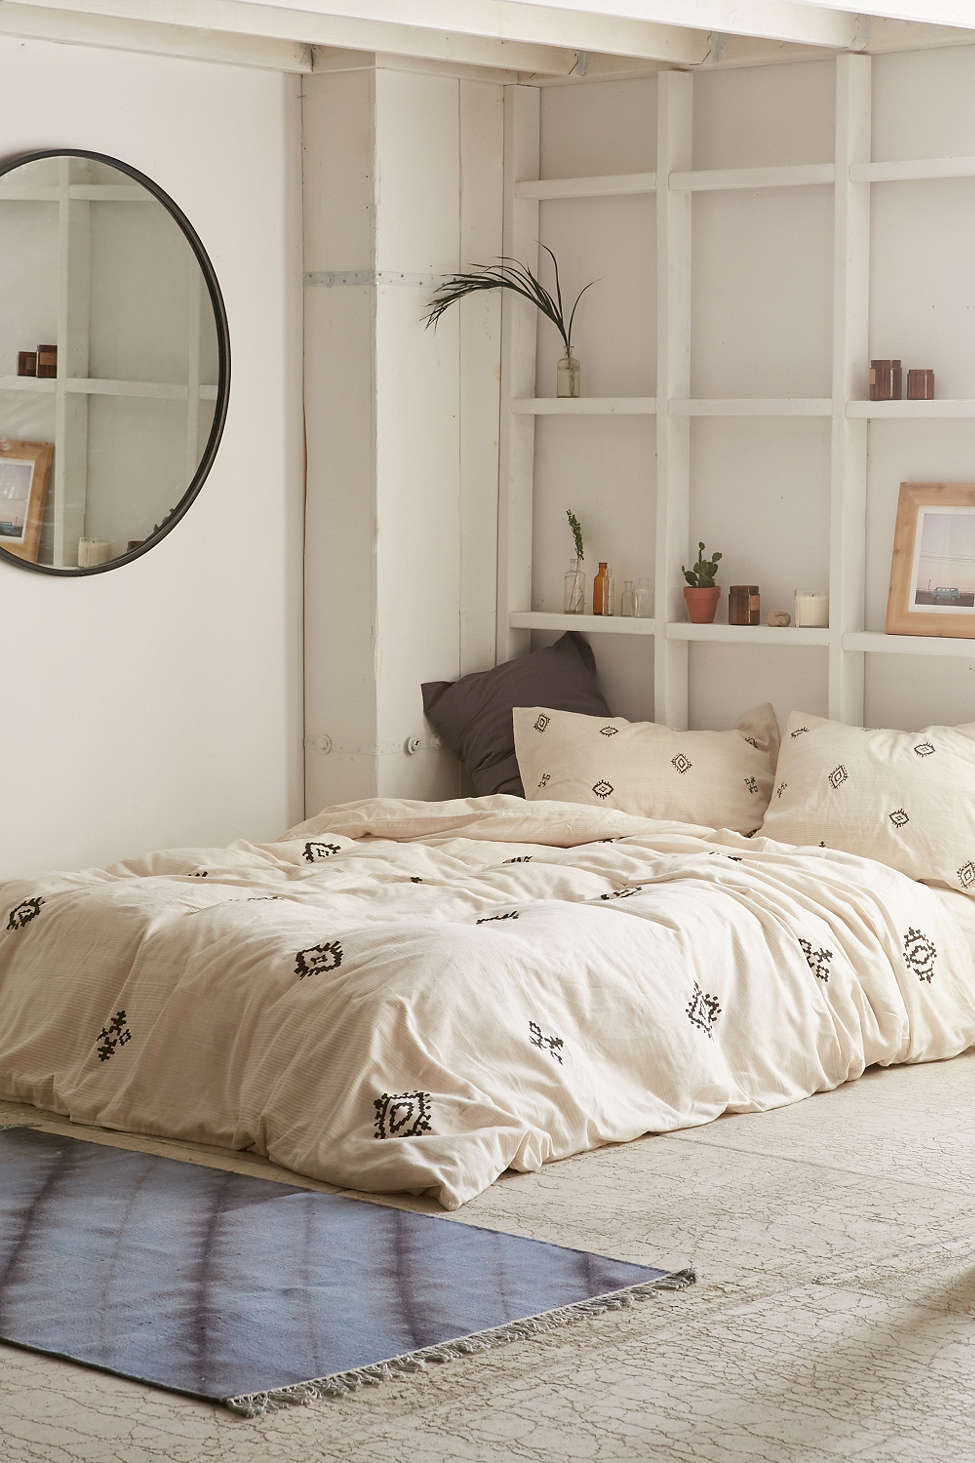 bedroom design tips for a serene sanctuary